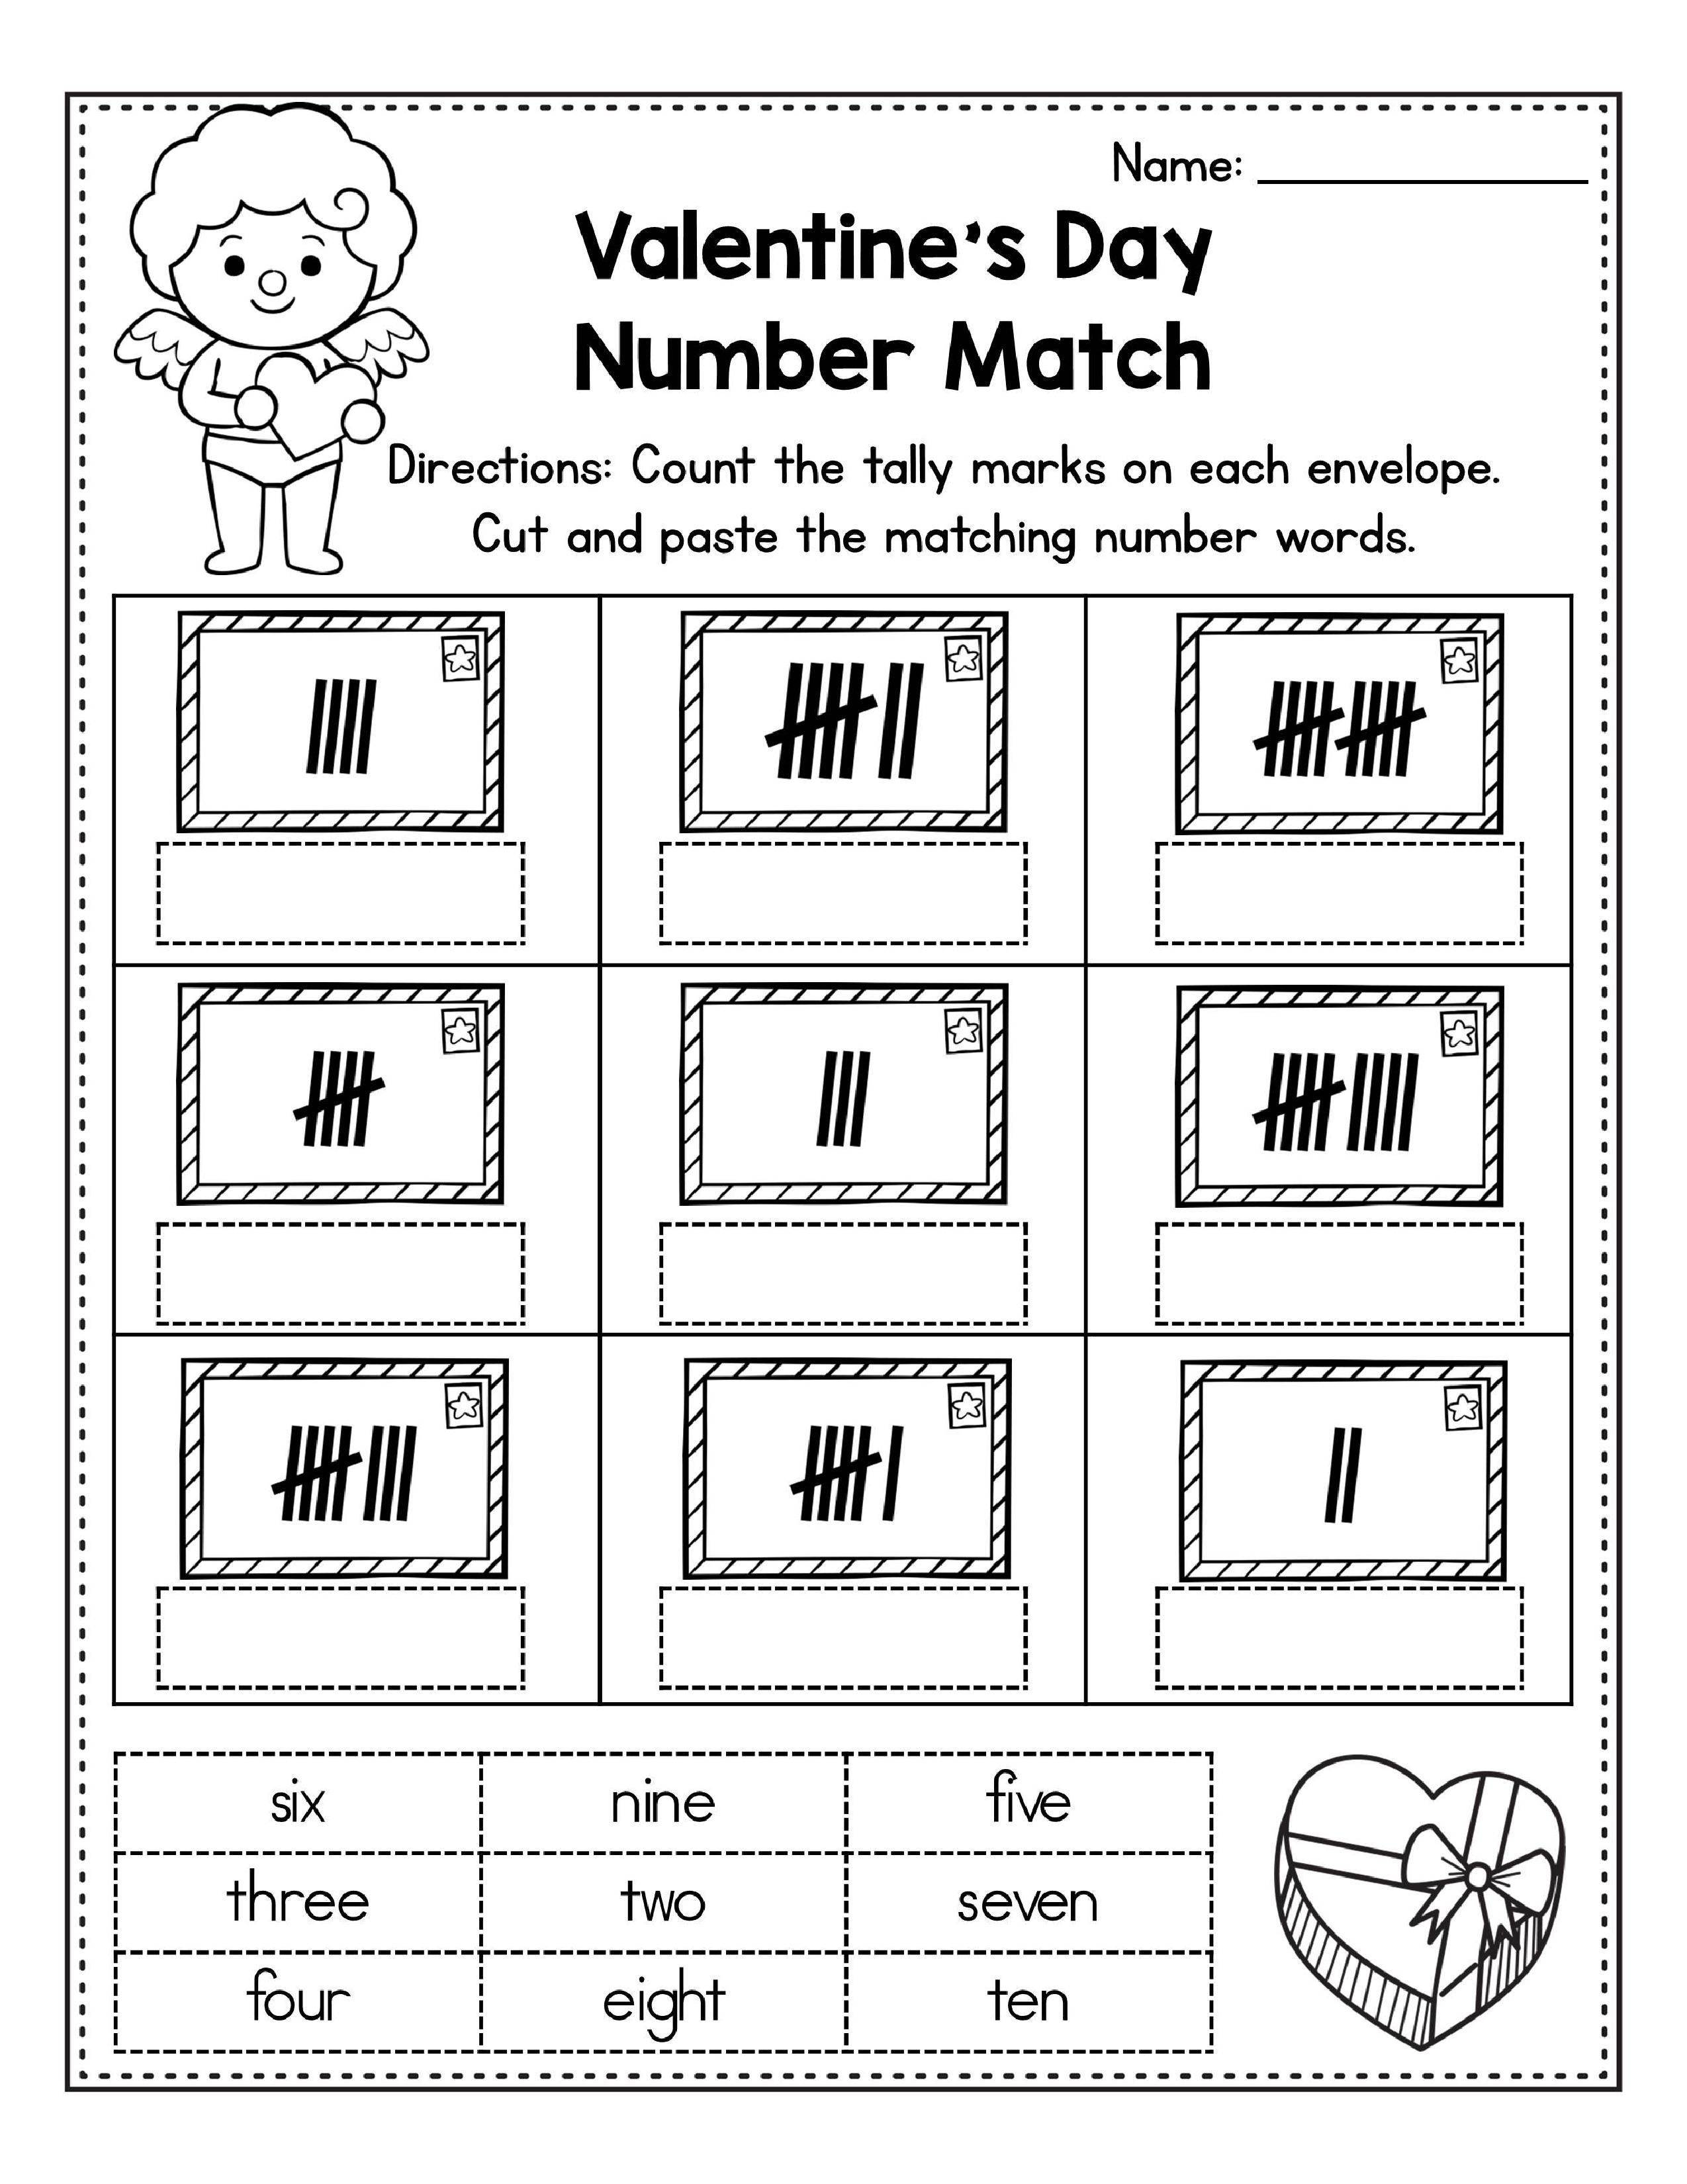 Free Valentine S Day Worksheets And Printables For Kindergarten And Preschool In 2021 Classroom Freebies Special Education Autism Holiday Lessons [ 3300 x 2549 Pixel ]